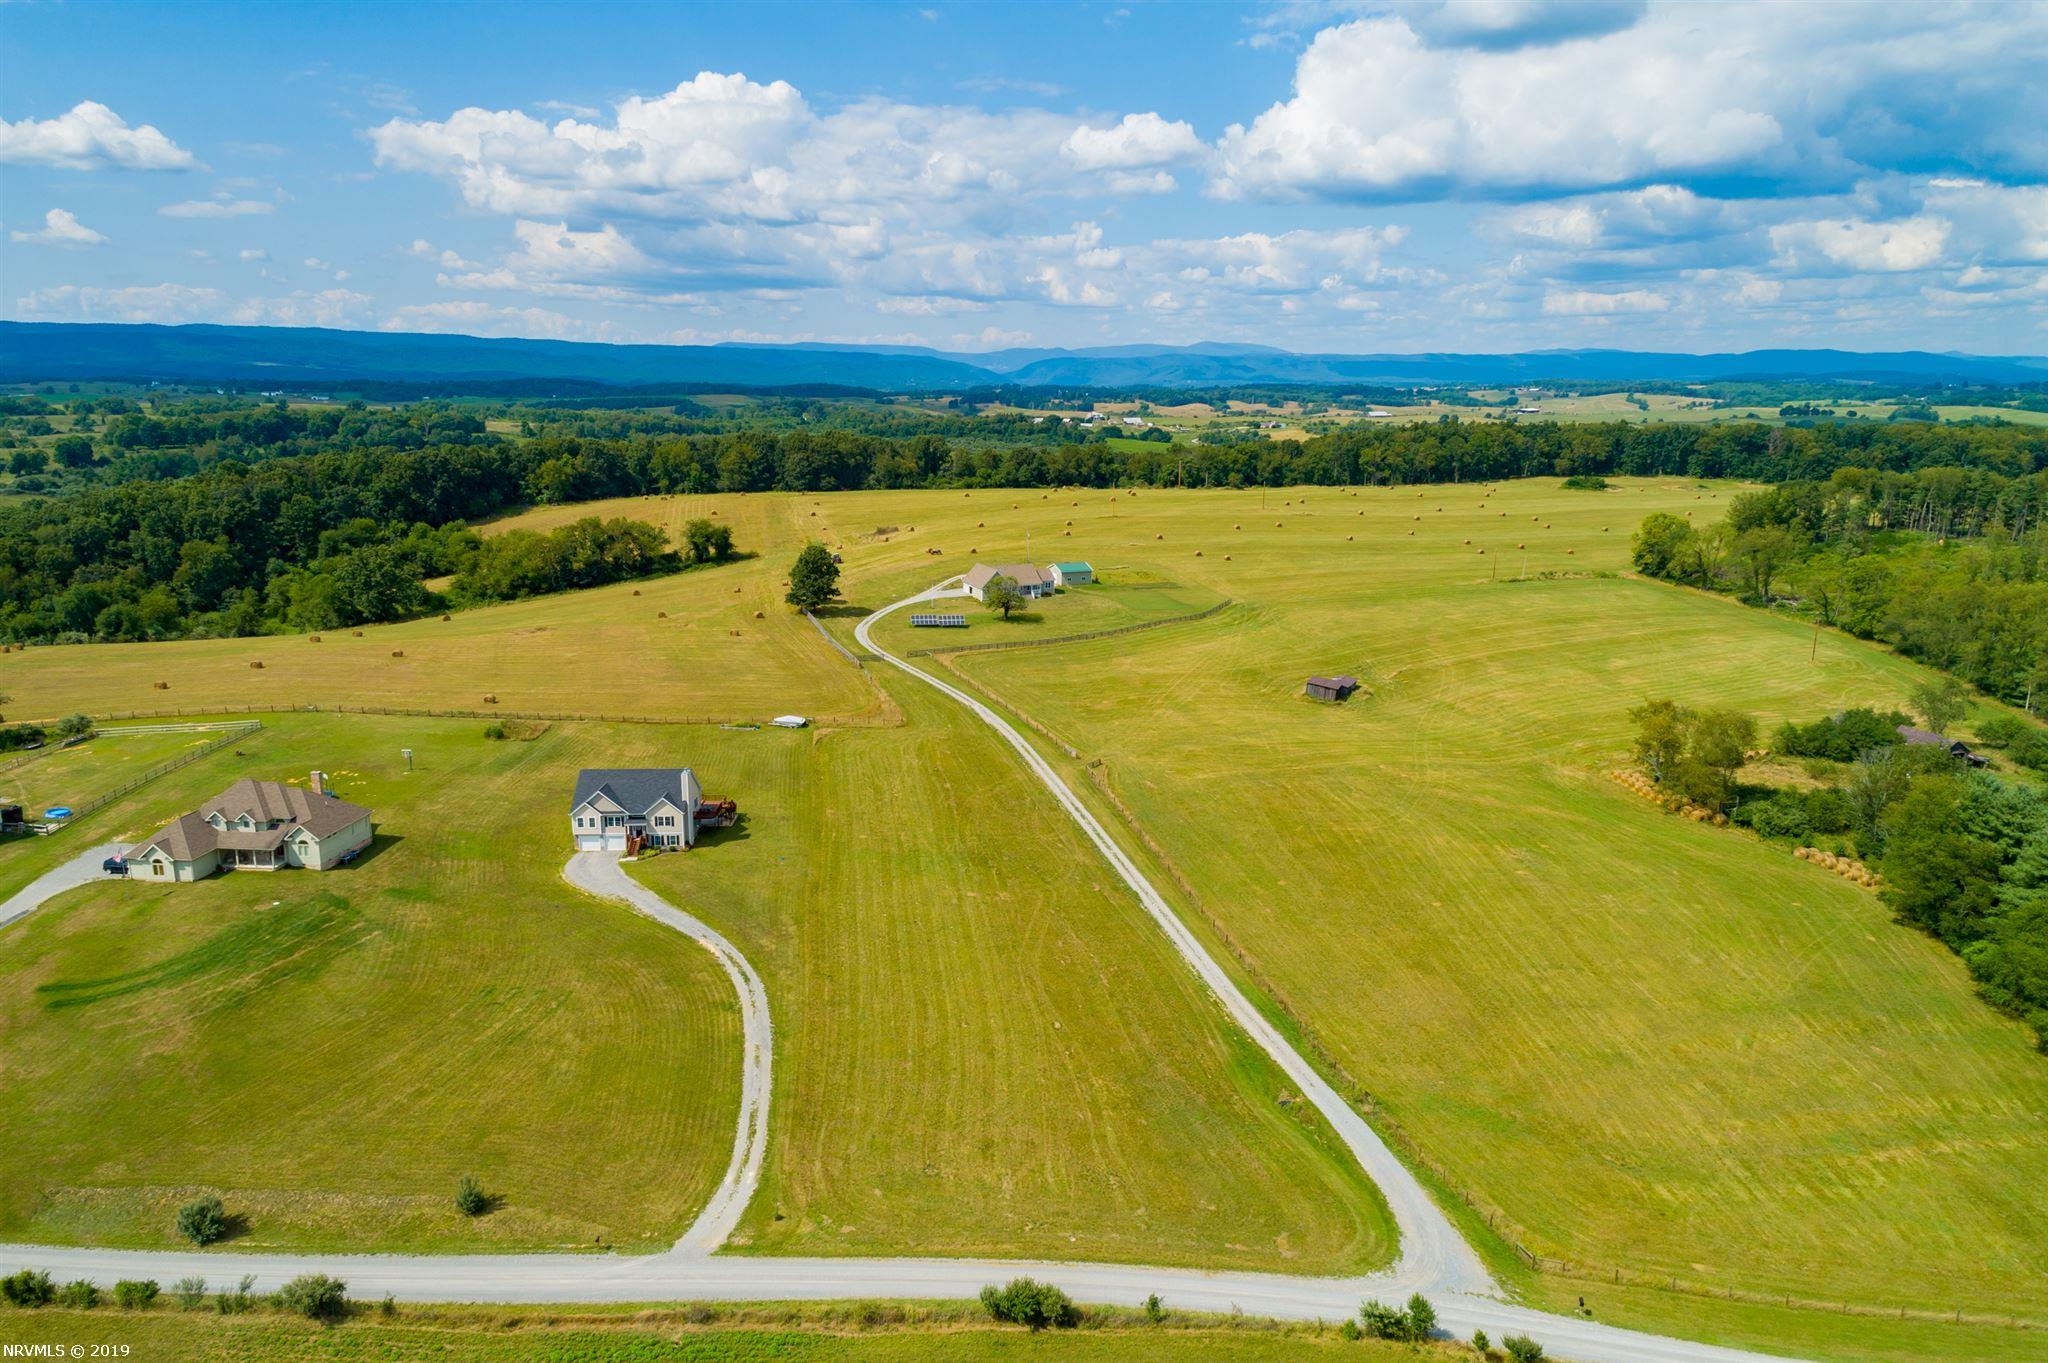 +/-1.462 acre building lot located in Hedge Lane Subdivision in Pulaski County, VA. Convenient to I-81 and US 11 and located a manageable distance from Virginia Tech, New River Community College, and Radford University. The property has a nice level lay and provides a great location to build the home of your dreams!